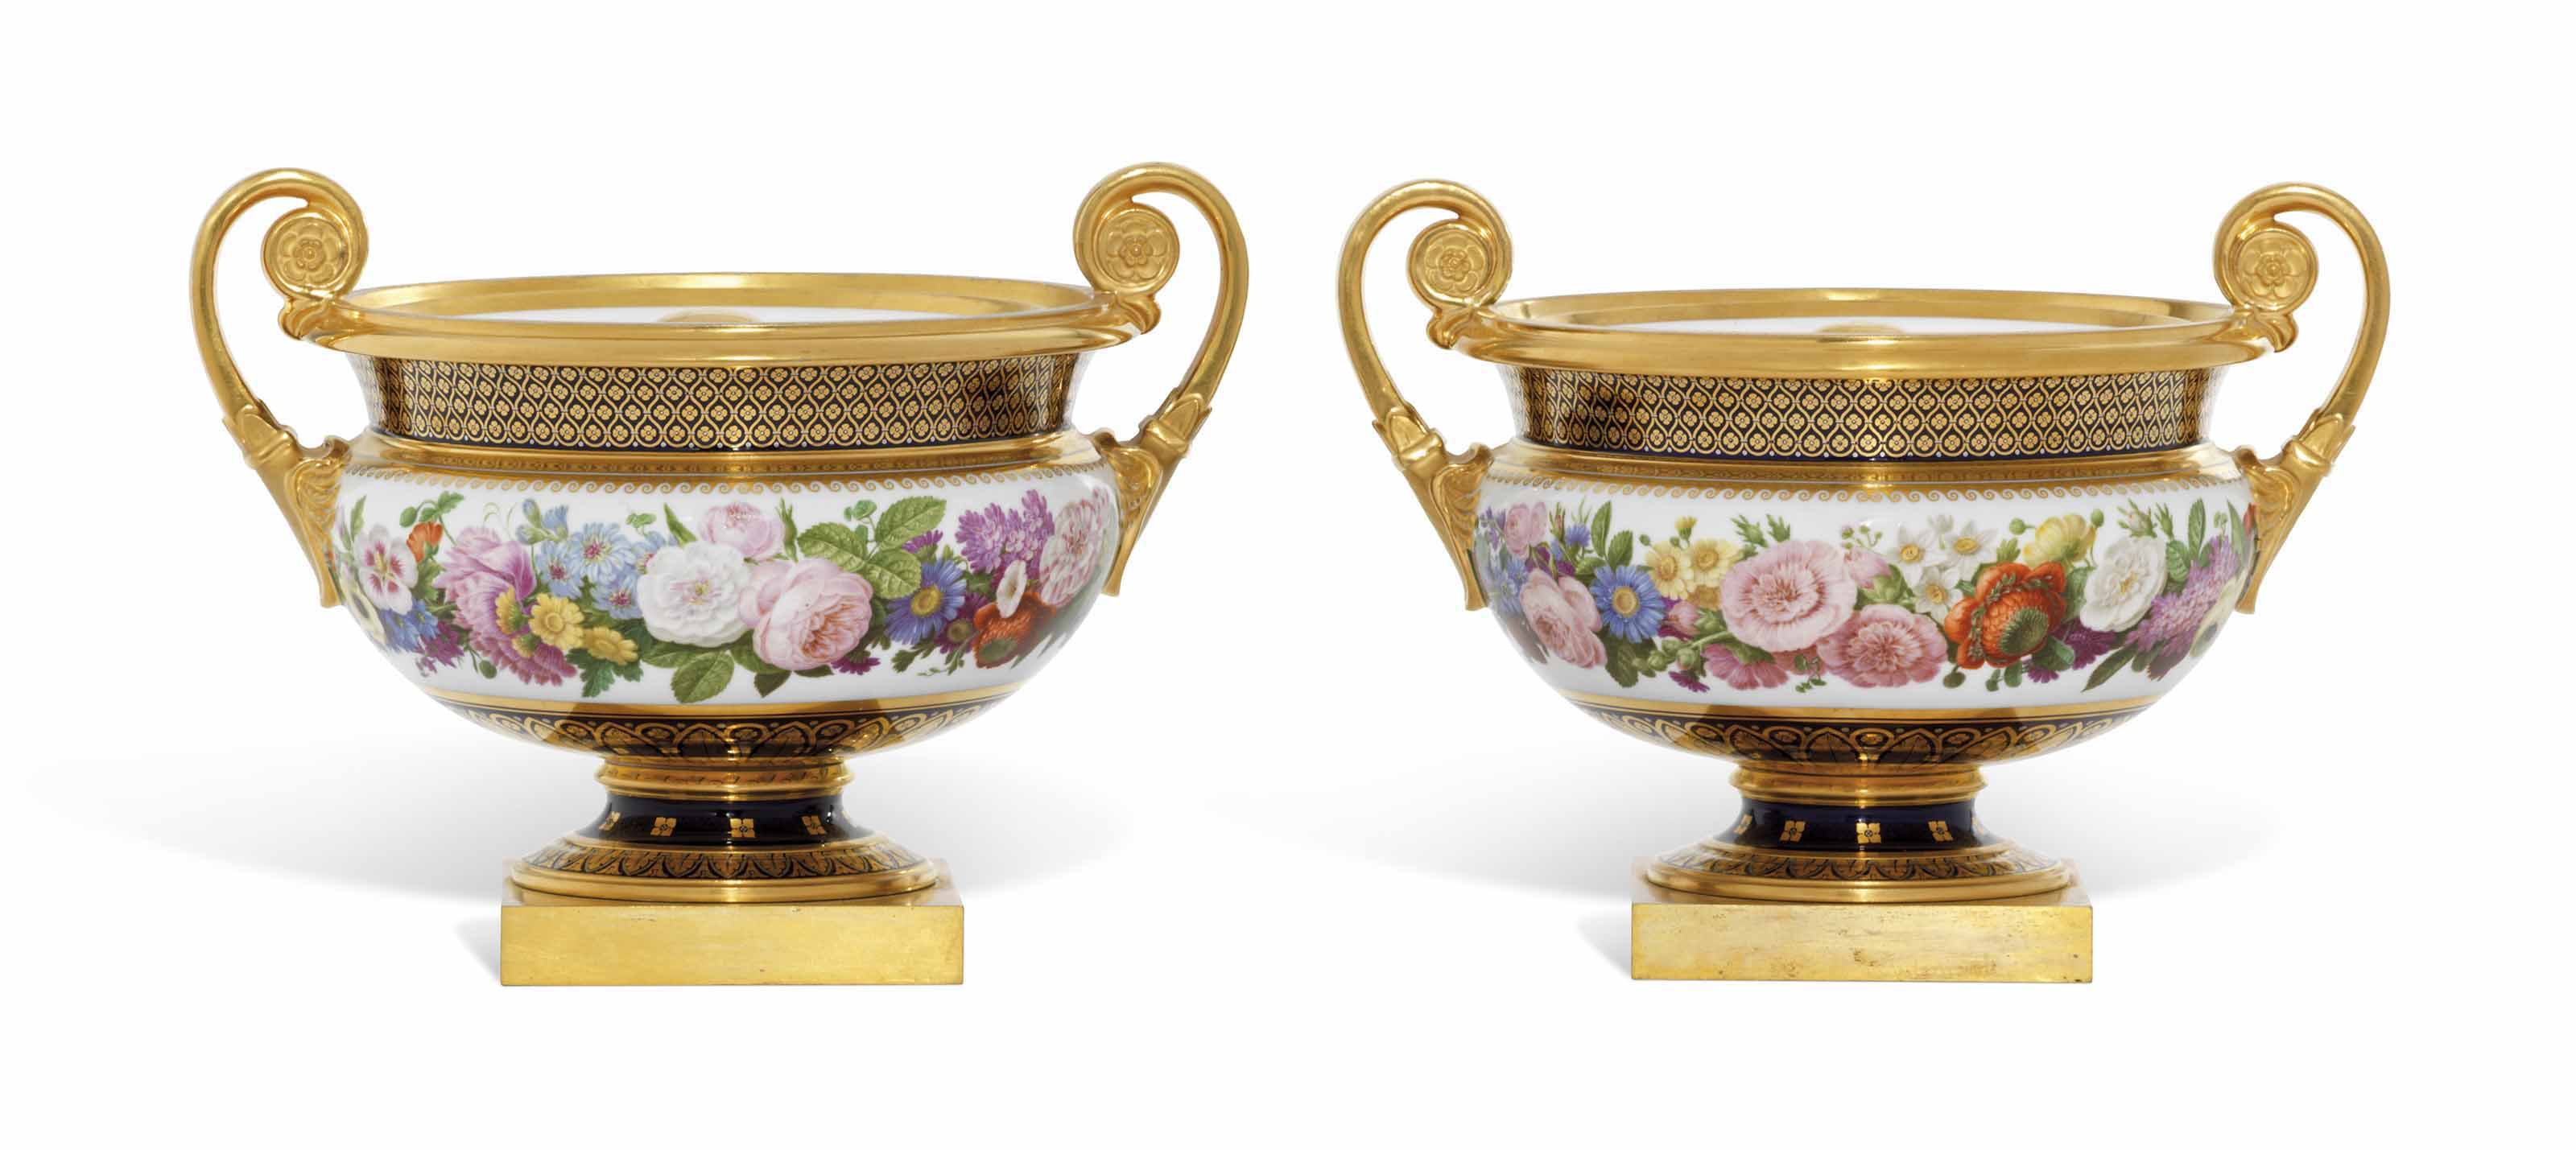 A PAIR OF SEVRES (HARD PASTE) ICE-PAILS, COVERS AND LINERS (GLACIERE CHANOU) FROM THE SERVICE PRESENTED BY KING CHARLES X OF FRANCE TO SIR THOMAS LAWRENCE